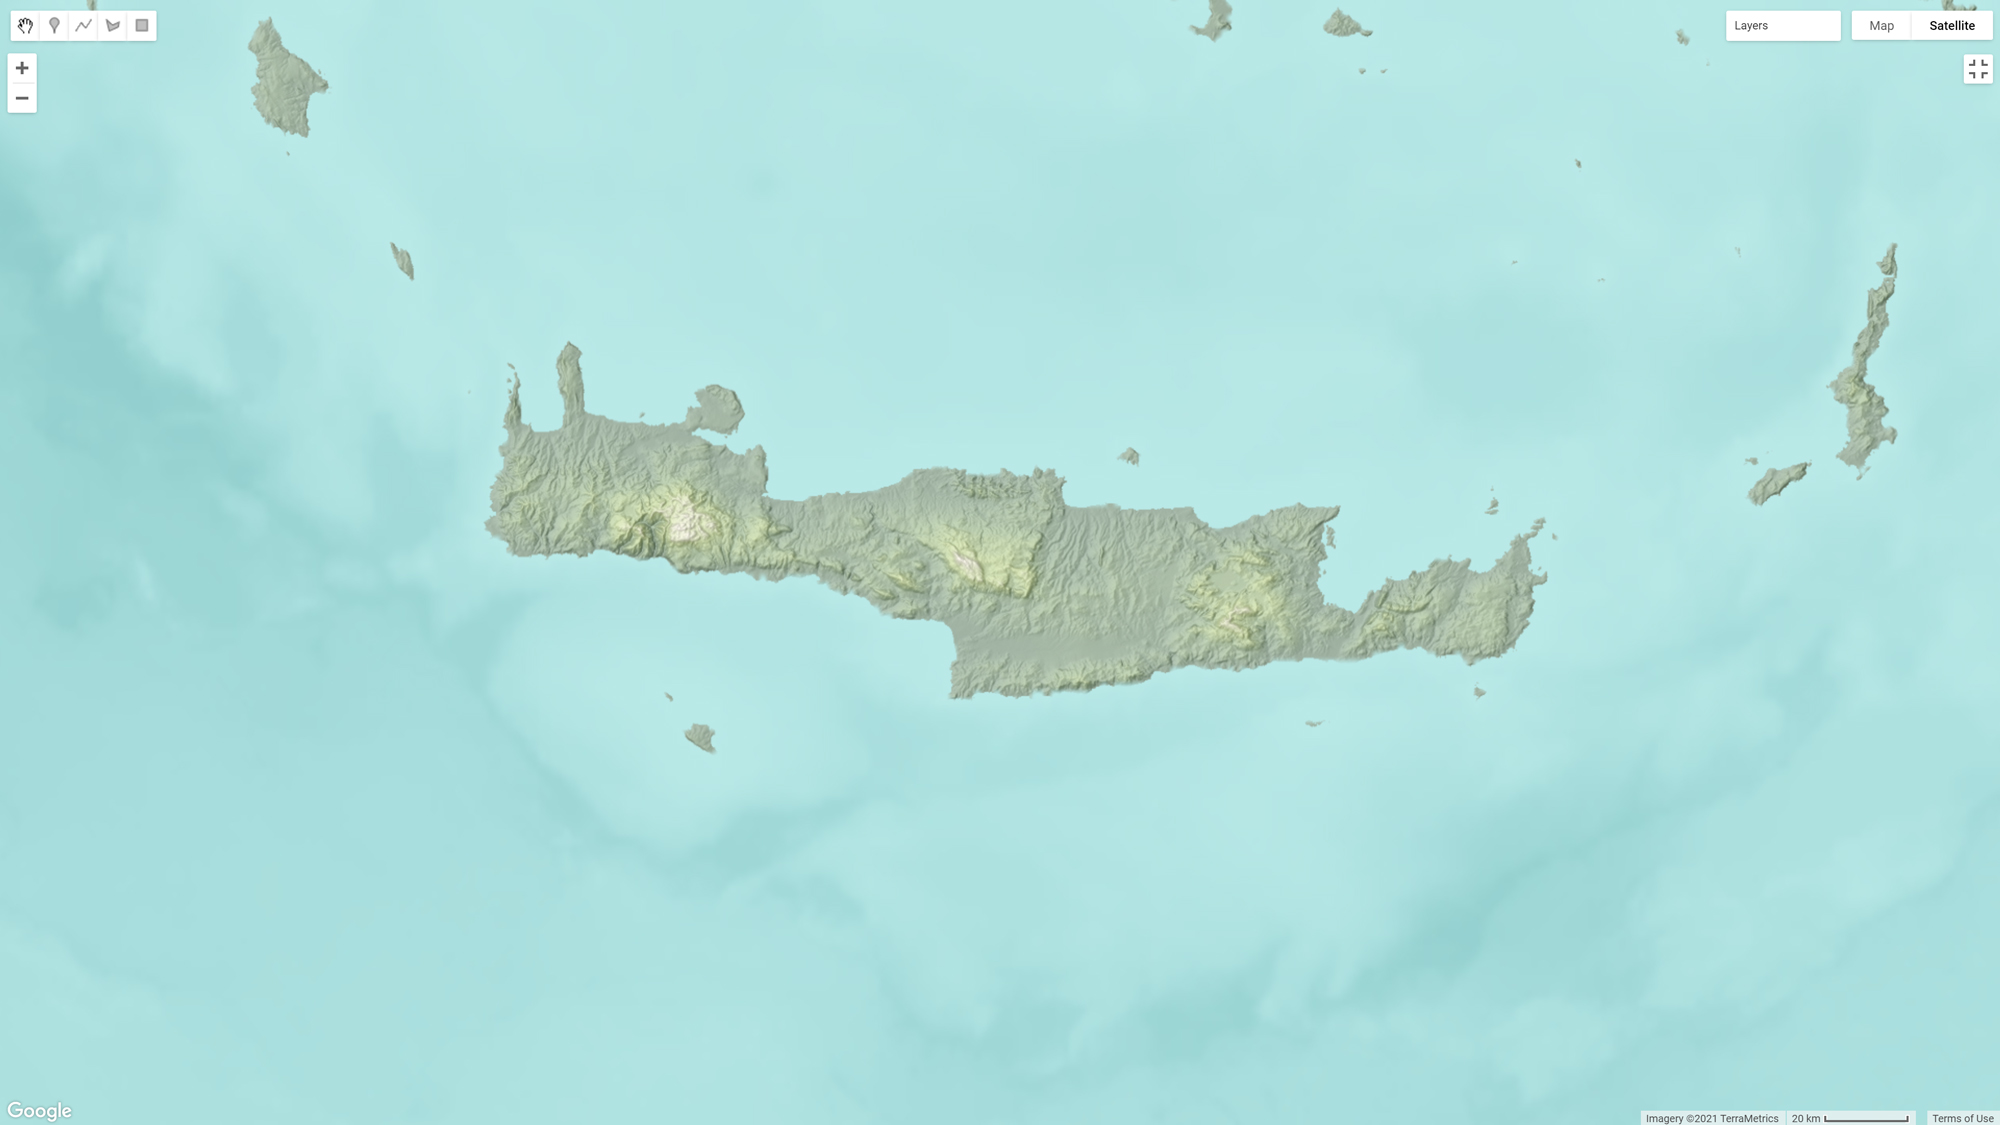 Picture 5: Adding Bathymetry to the Seas and Oceans.